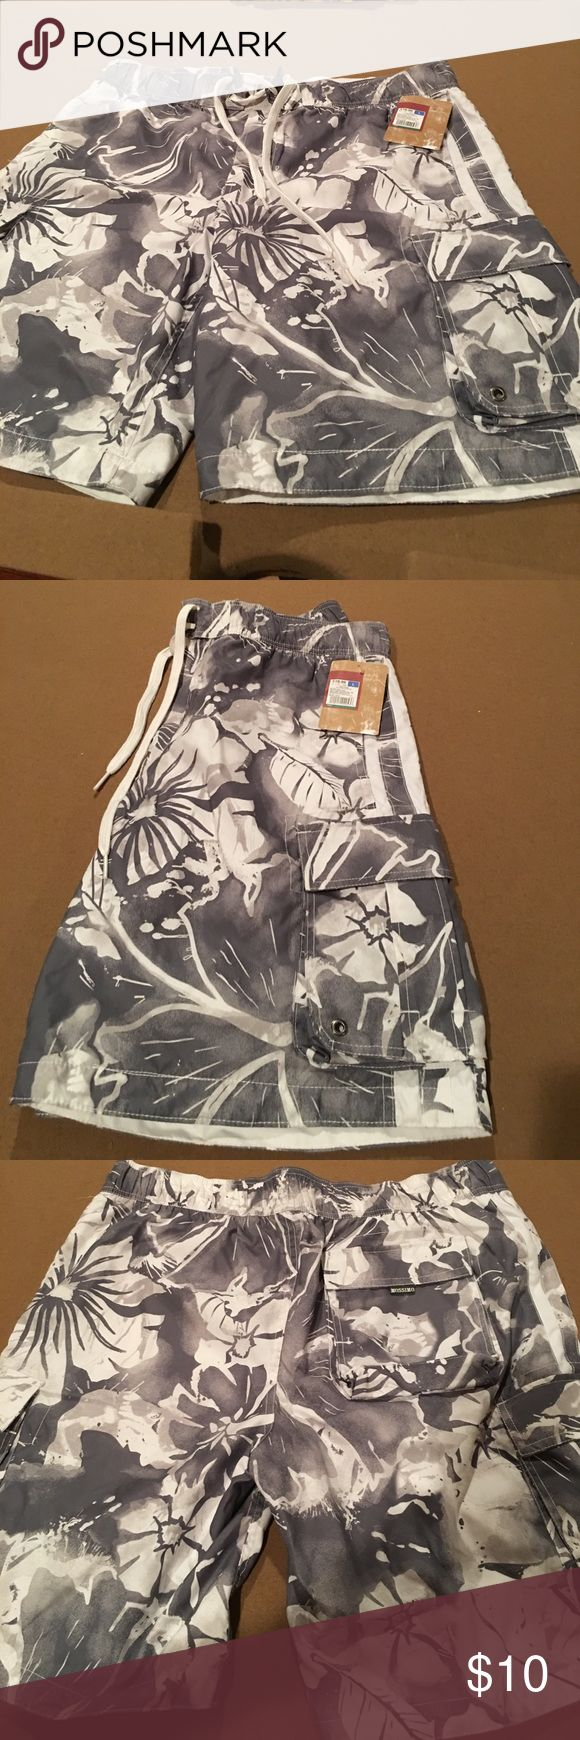 Men's swim trunks size large Men's swim trunks from Mossimo.  Size Large. With tags attached.  Has mesh liner. Draw string side pockets with Velcro closure.  Back pocket with Velcro closure grey and white Hawaiian print Mossimo Supply Co. Swim Swim Trunks